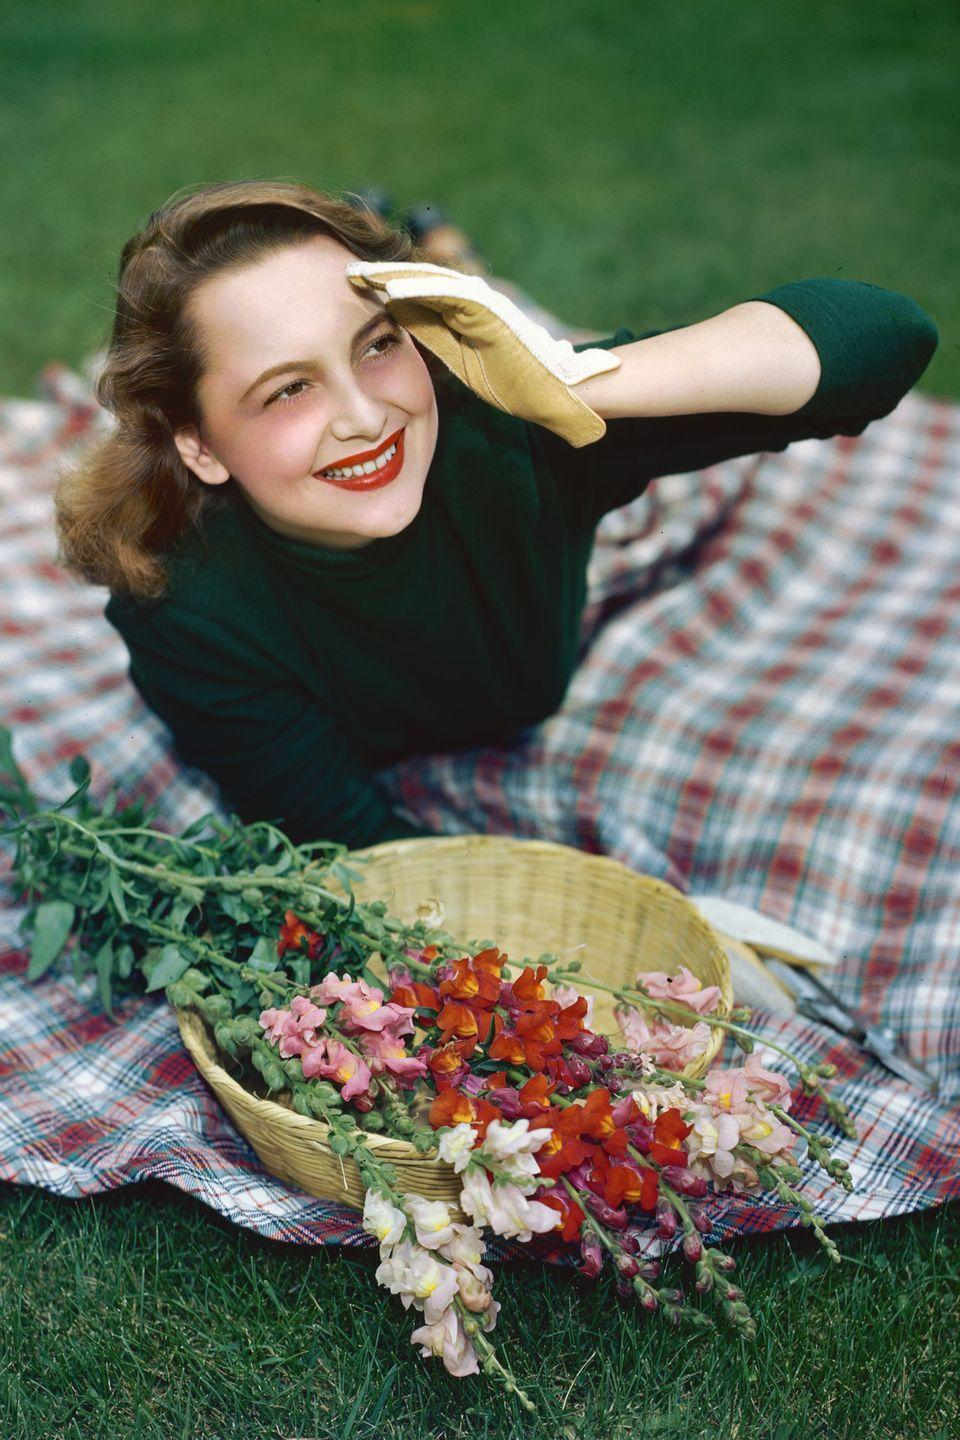 <p>Enjoying picnic weather in a green sweater and gloves atop a tartan blanket. </p>